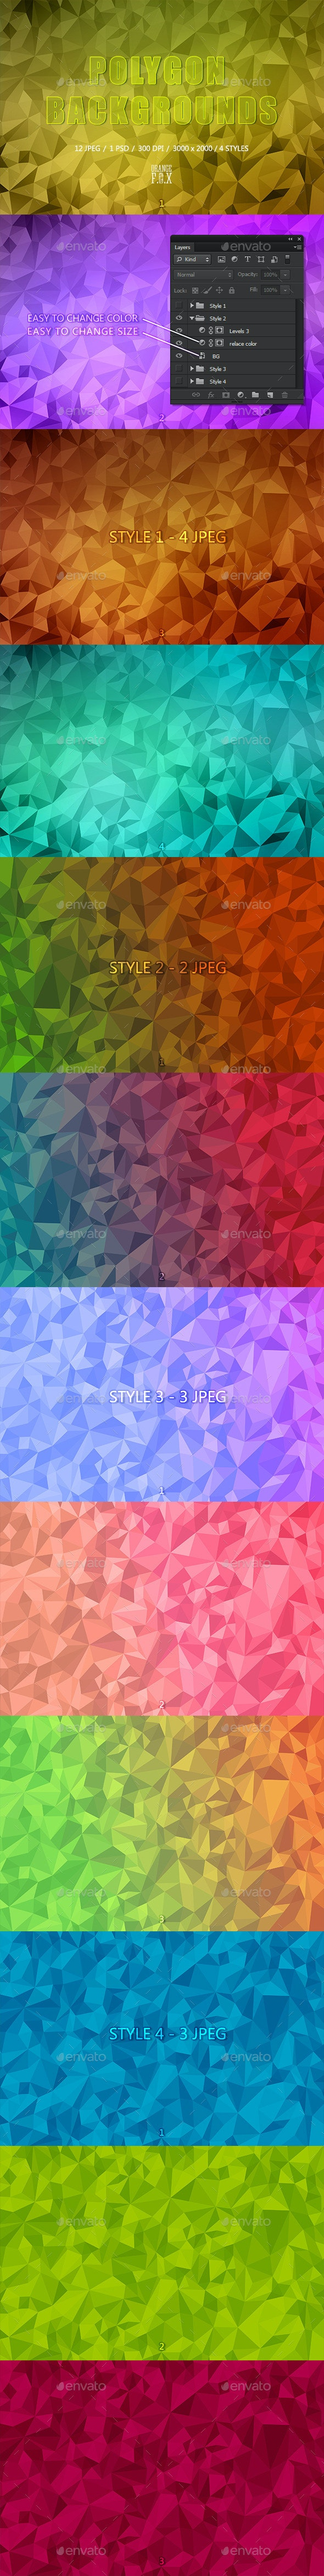 12 Polygon Backgrounds - 4 Styles - Abstract Backgrounds